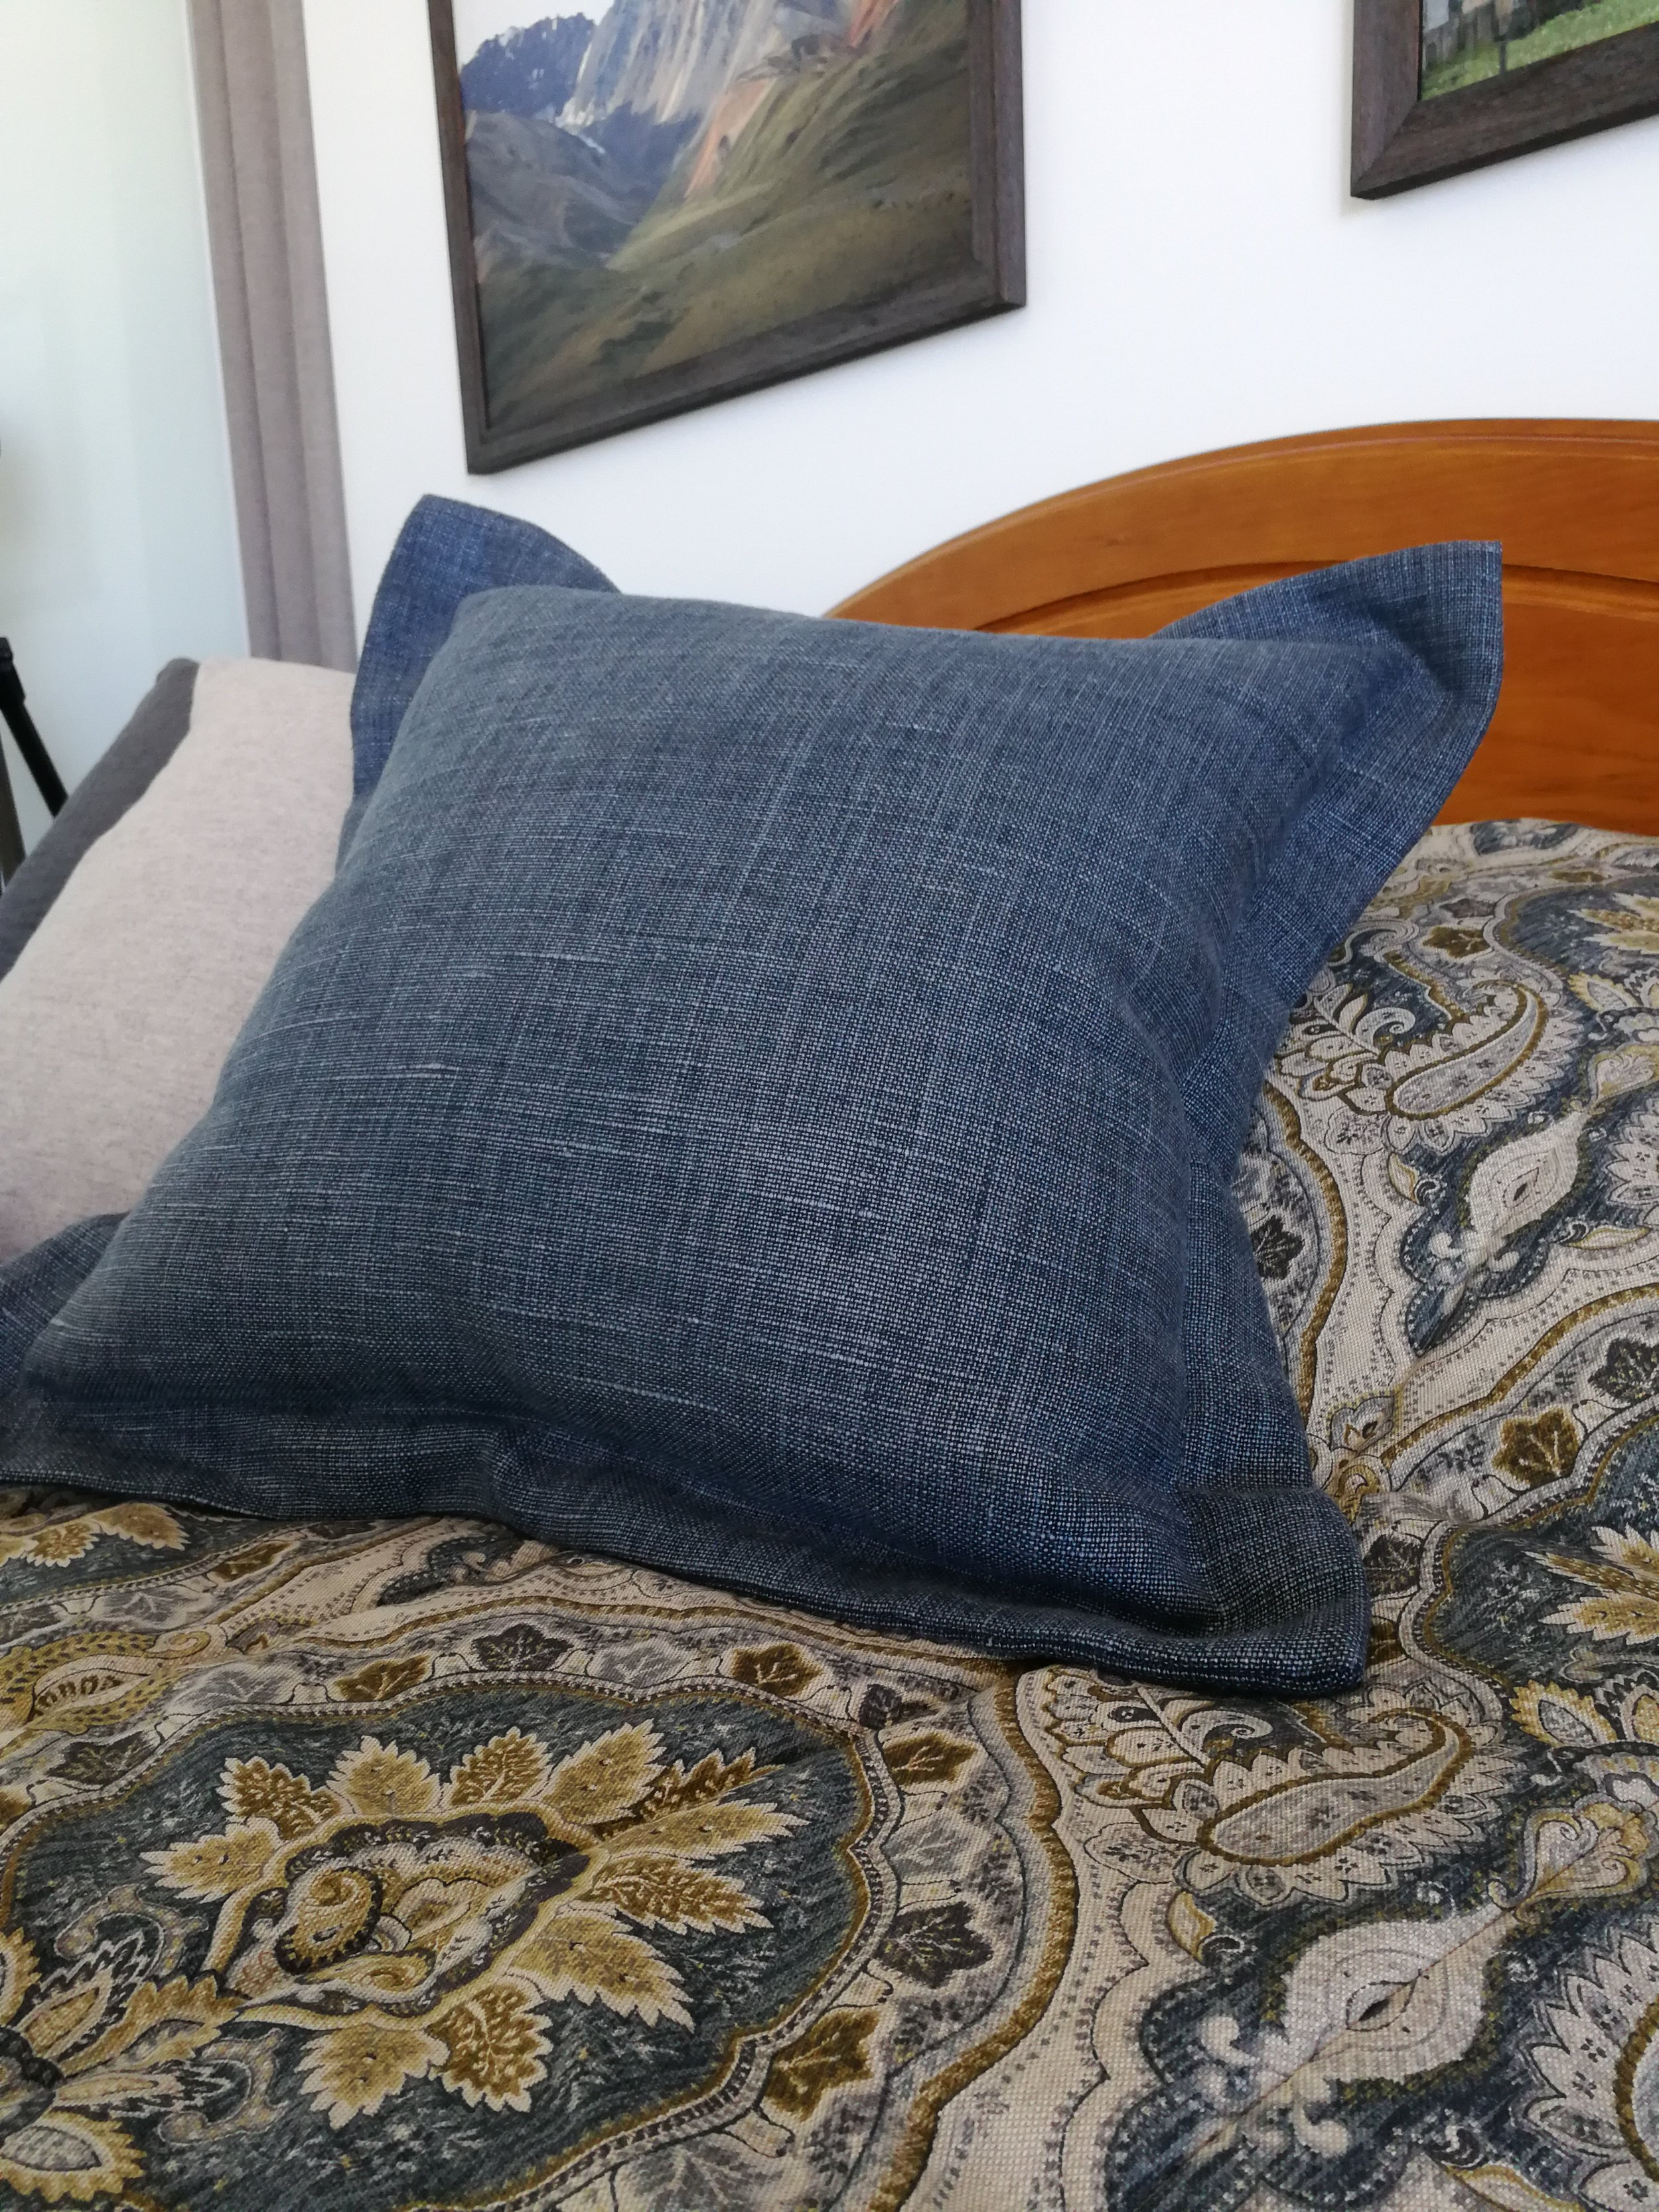 Tailored linen cushions give a clean smart finish